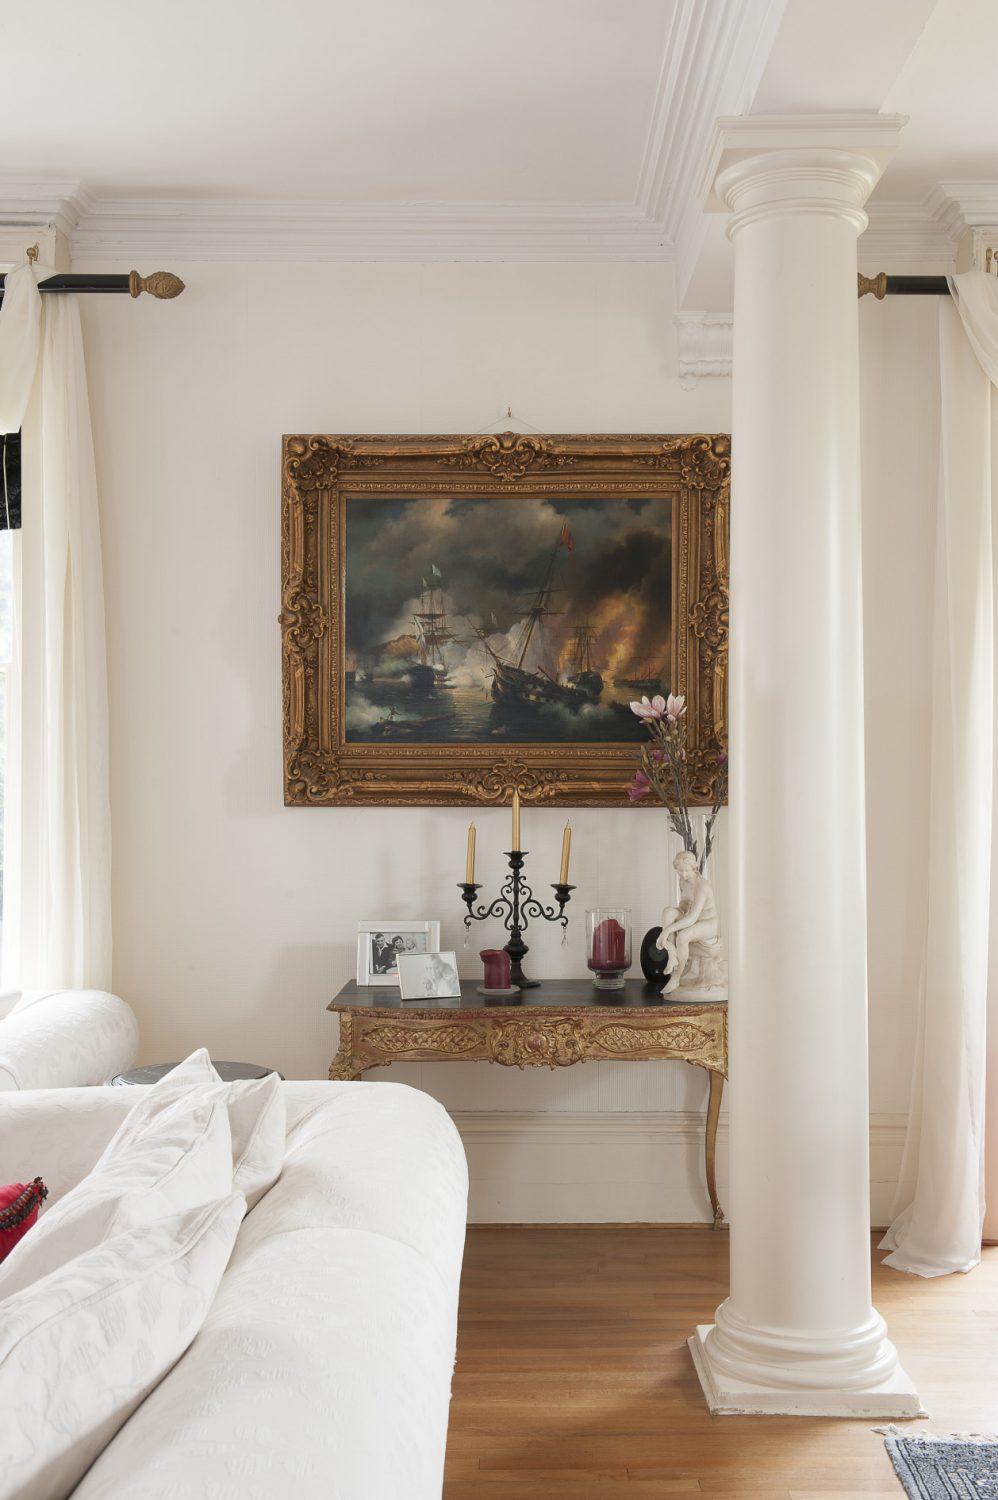 A sizable oil painting of a naval battle hangs above a gilded table